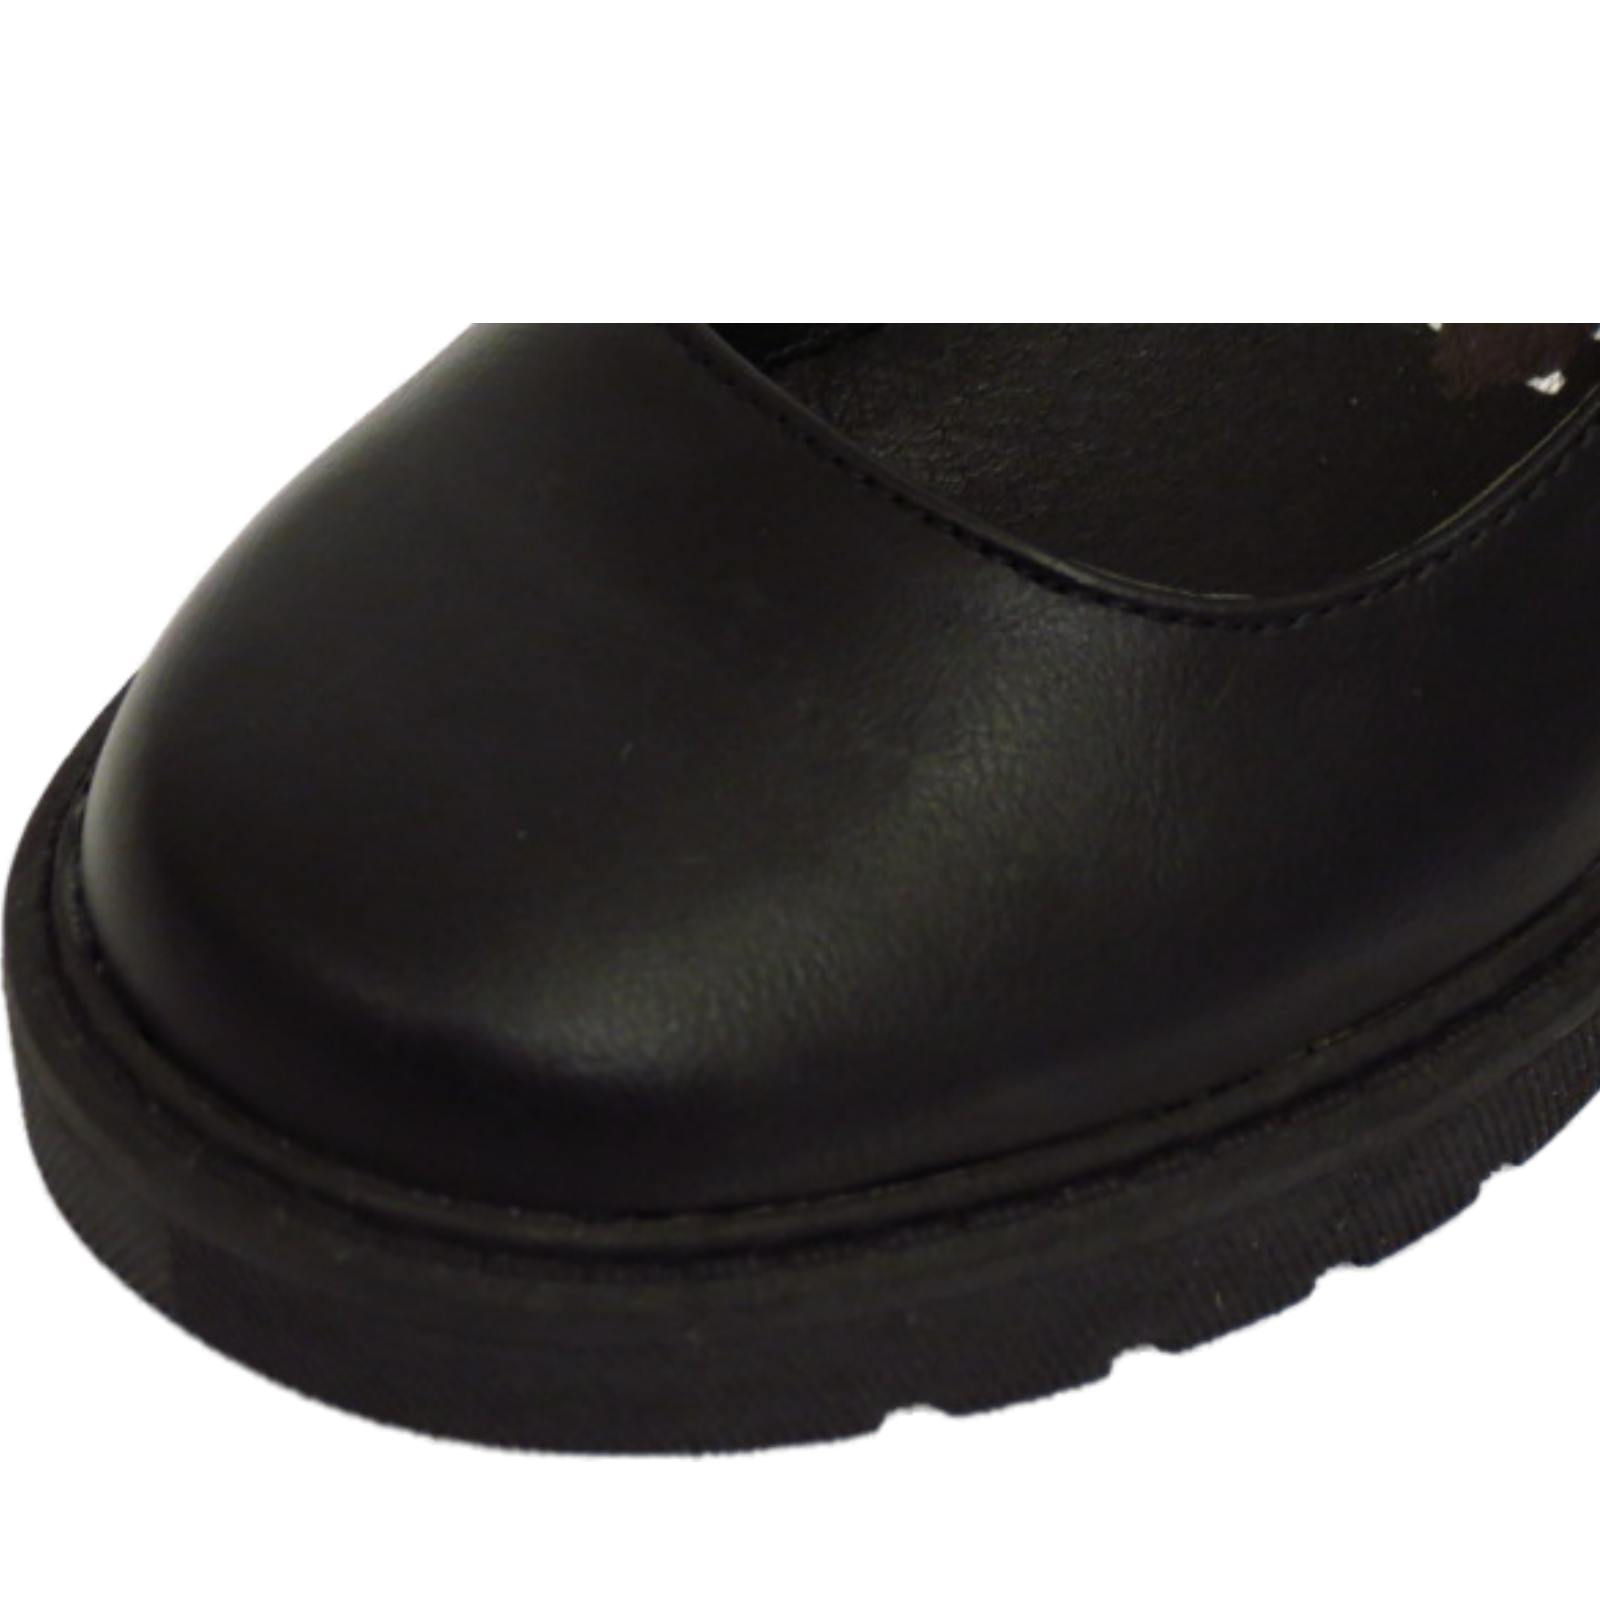 GIRLS-KIDS-CHILDRENS-BUCKLE-T-BAR-BLACK-SCHOOL-PUMPS-DOLLY-SMART-FLAT-SHOES-10-5 thumbnail 19